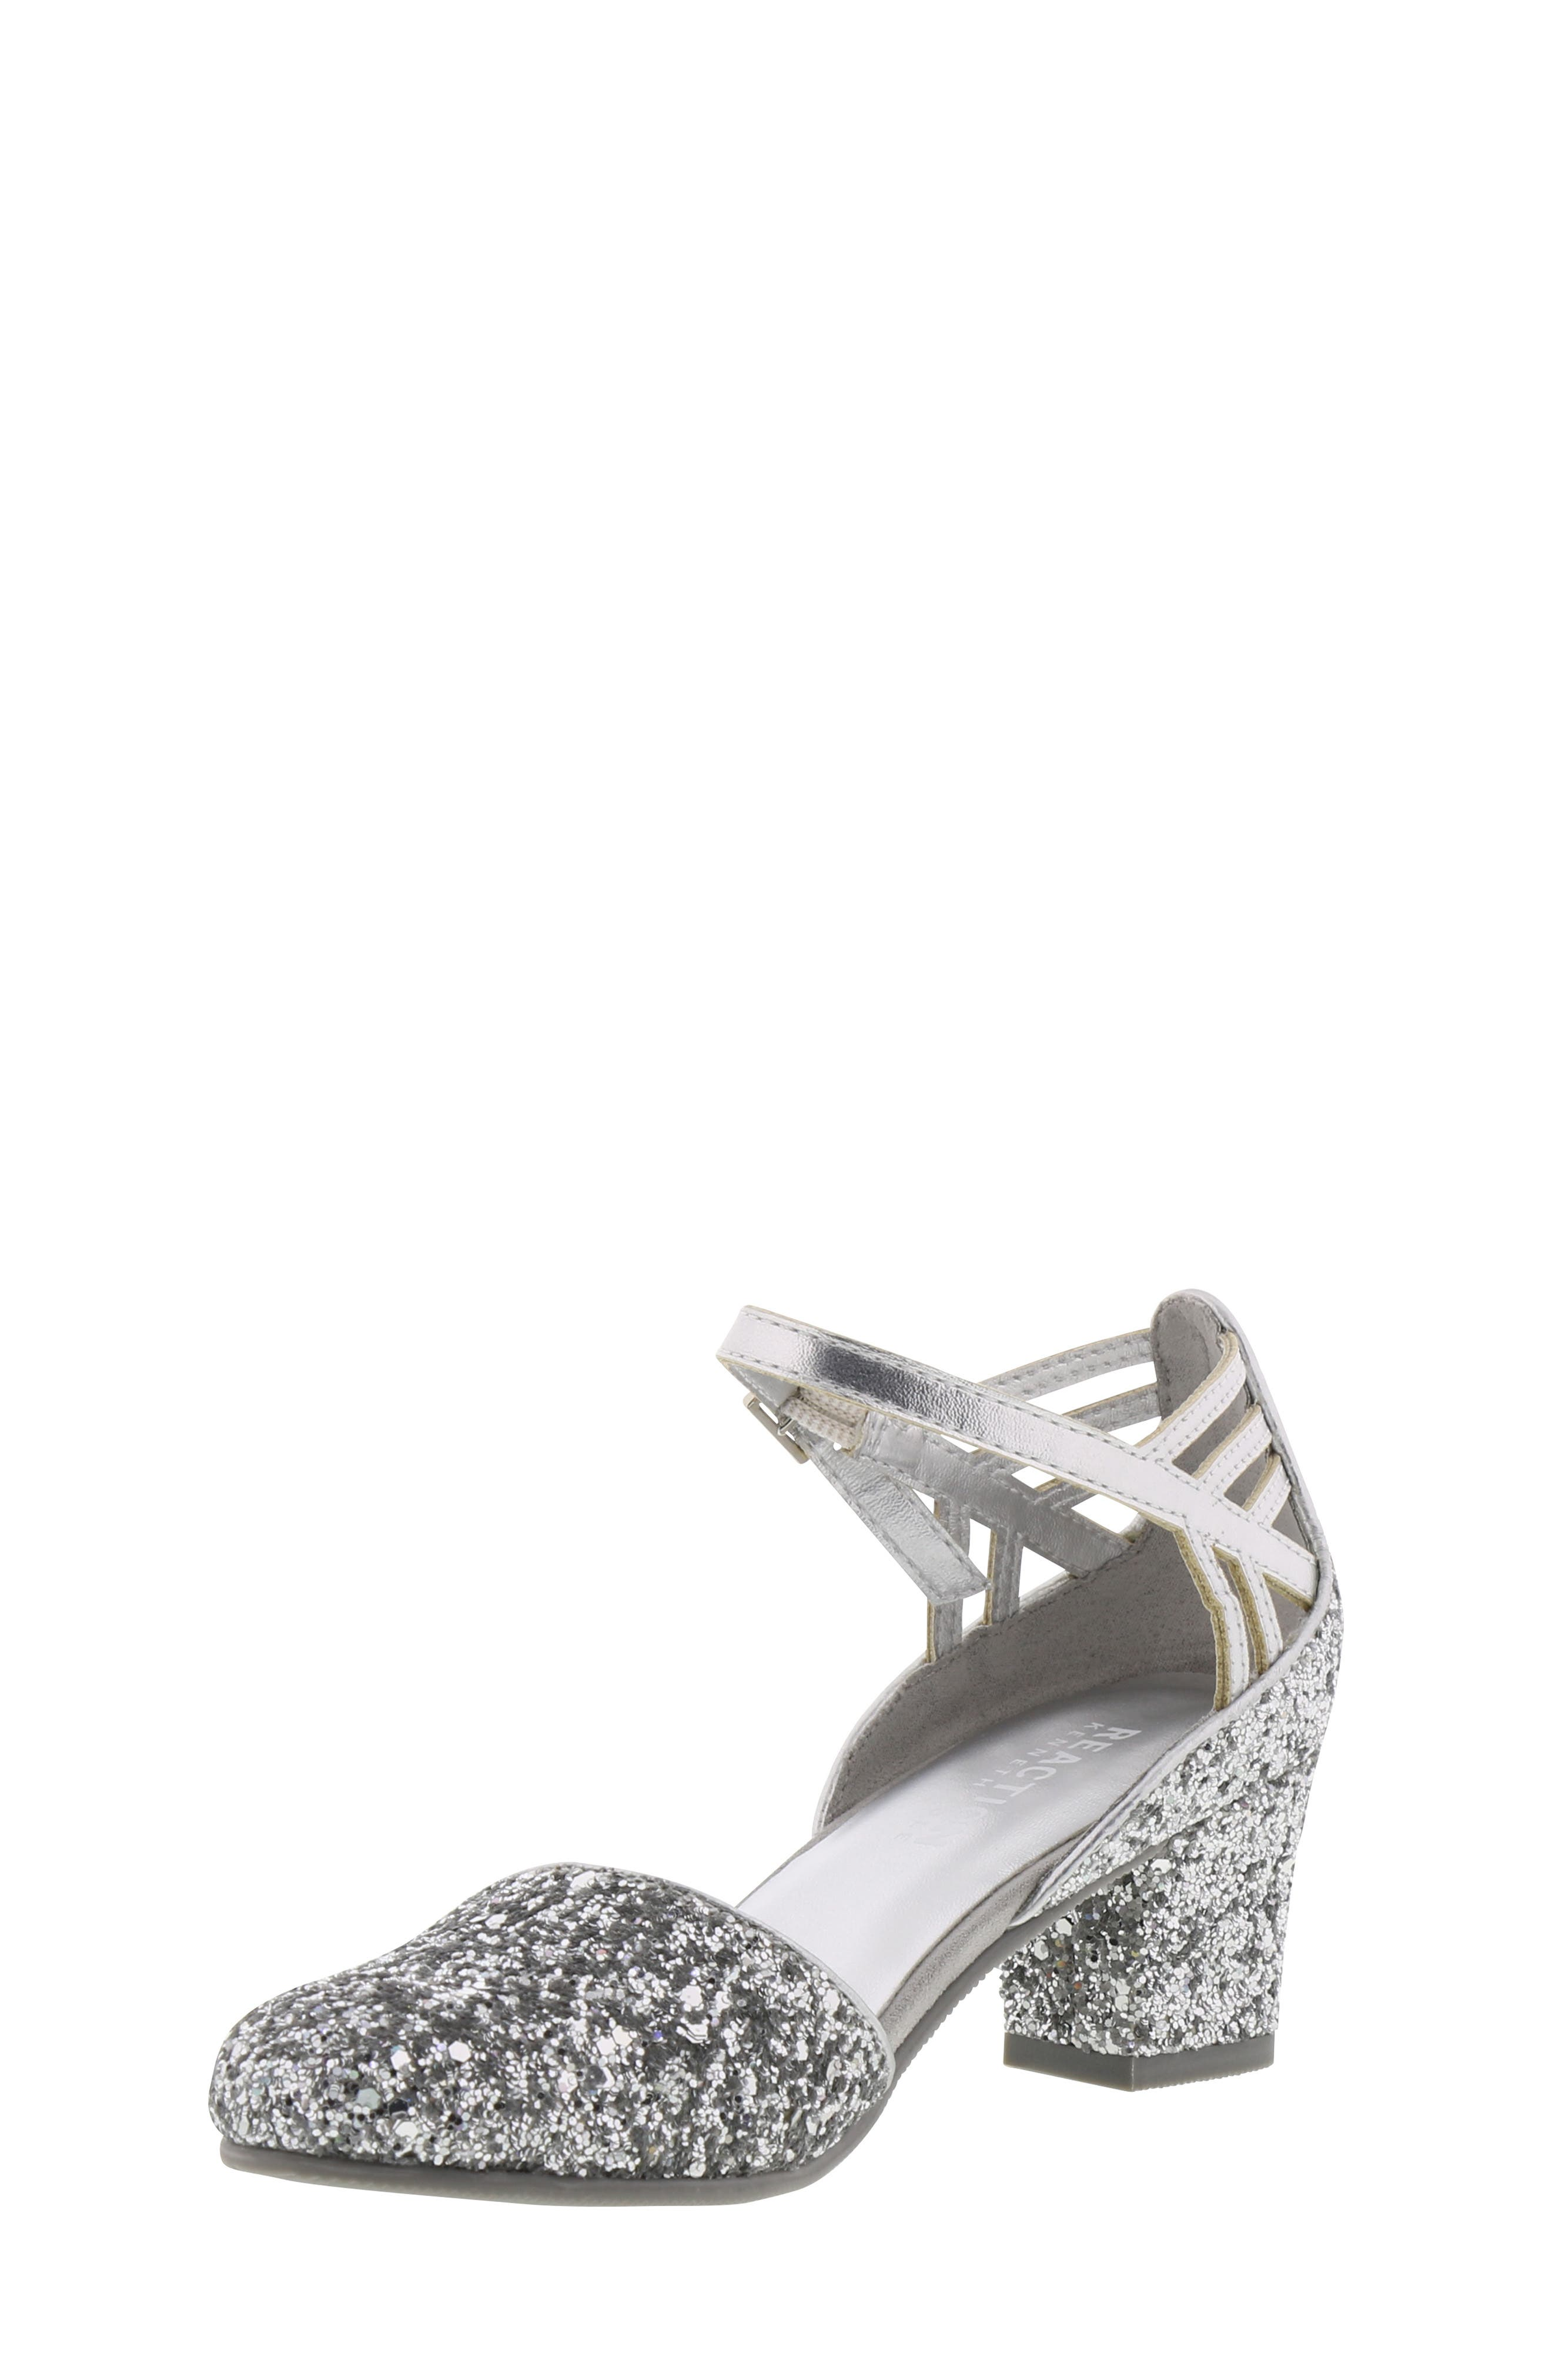 REACTION KENNETH COLE, Kenneth Cole New York Sarah Shine Pump, Alternate thumbnail 8, color, SILVER MULTI